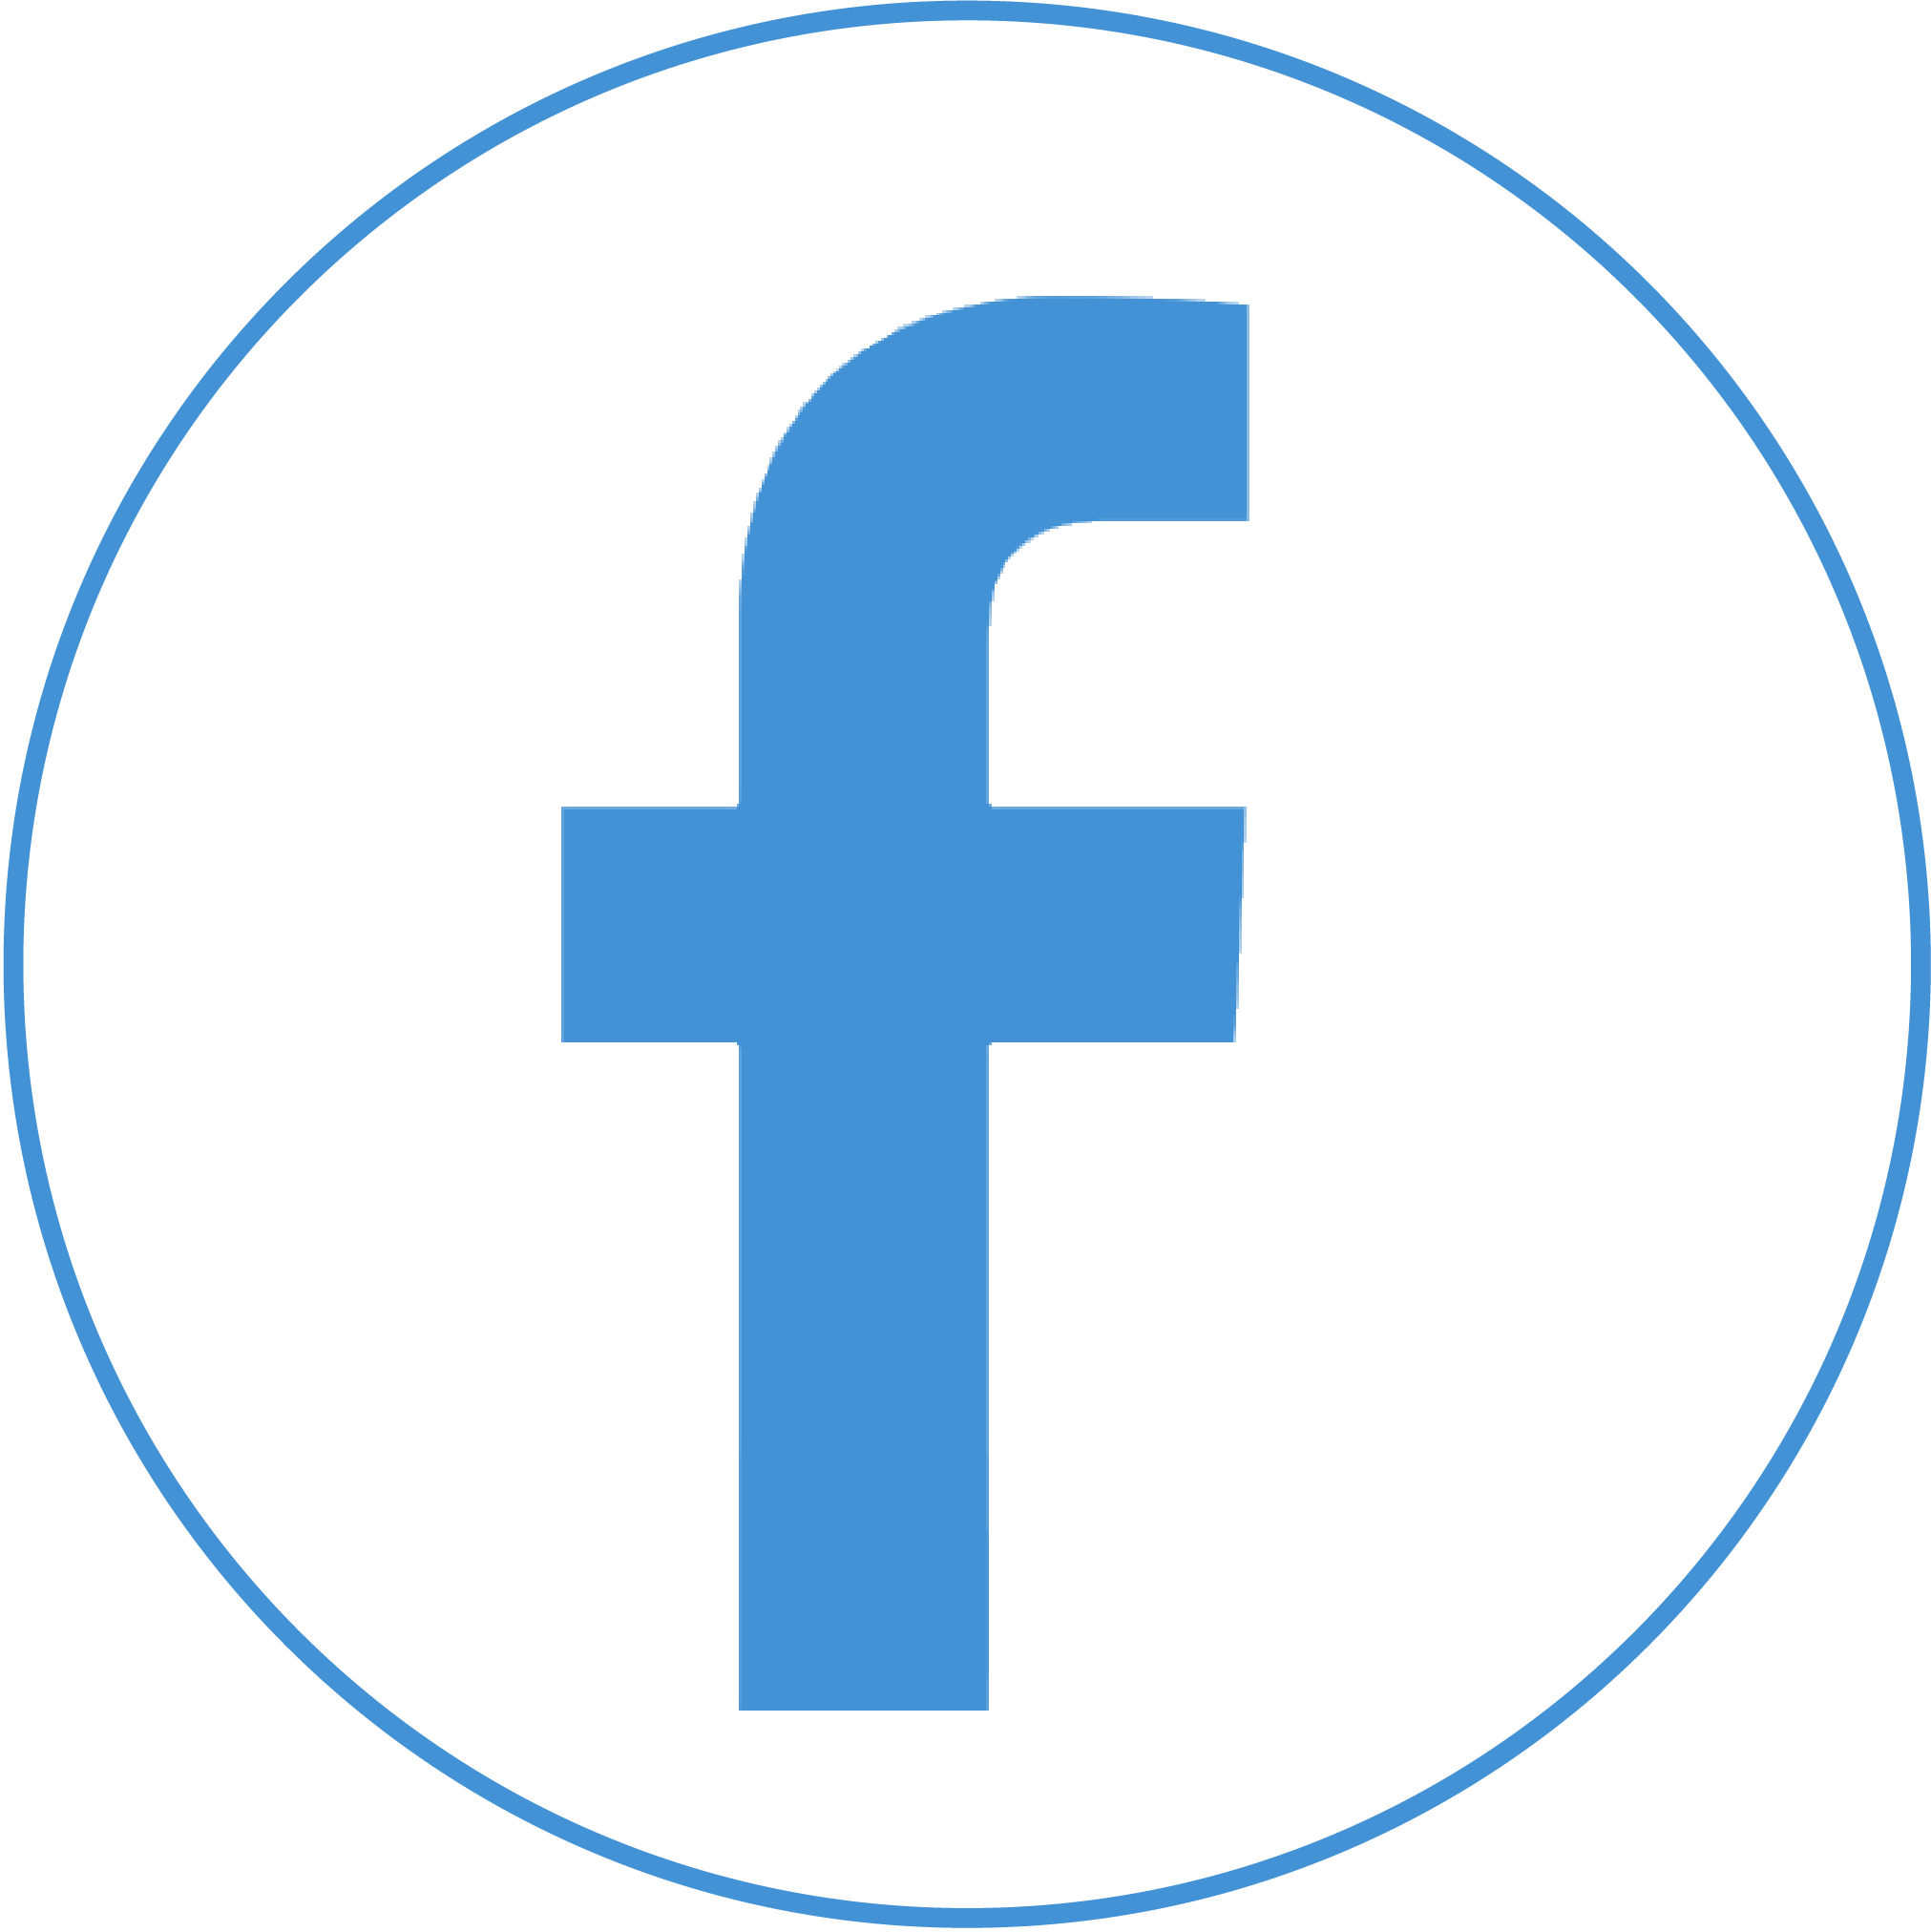 High-quality Facebook Logo Cliparts For Free! image #2343